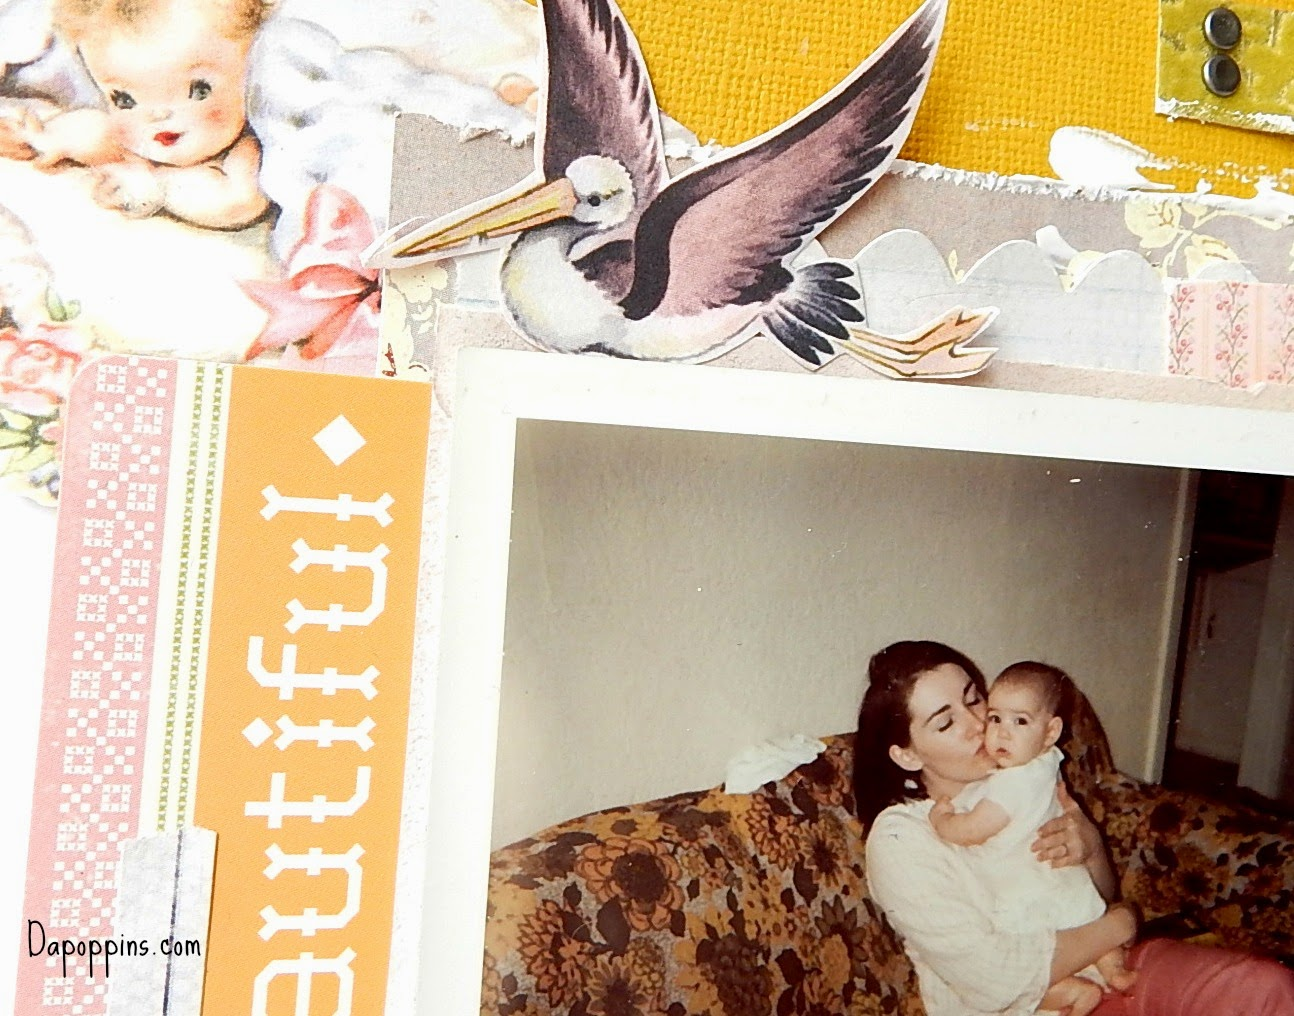 ugliest couch, Mom & Me, old photo's, dapoppins